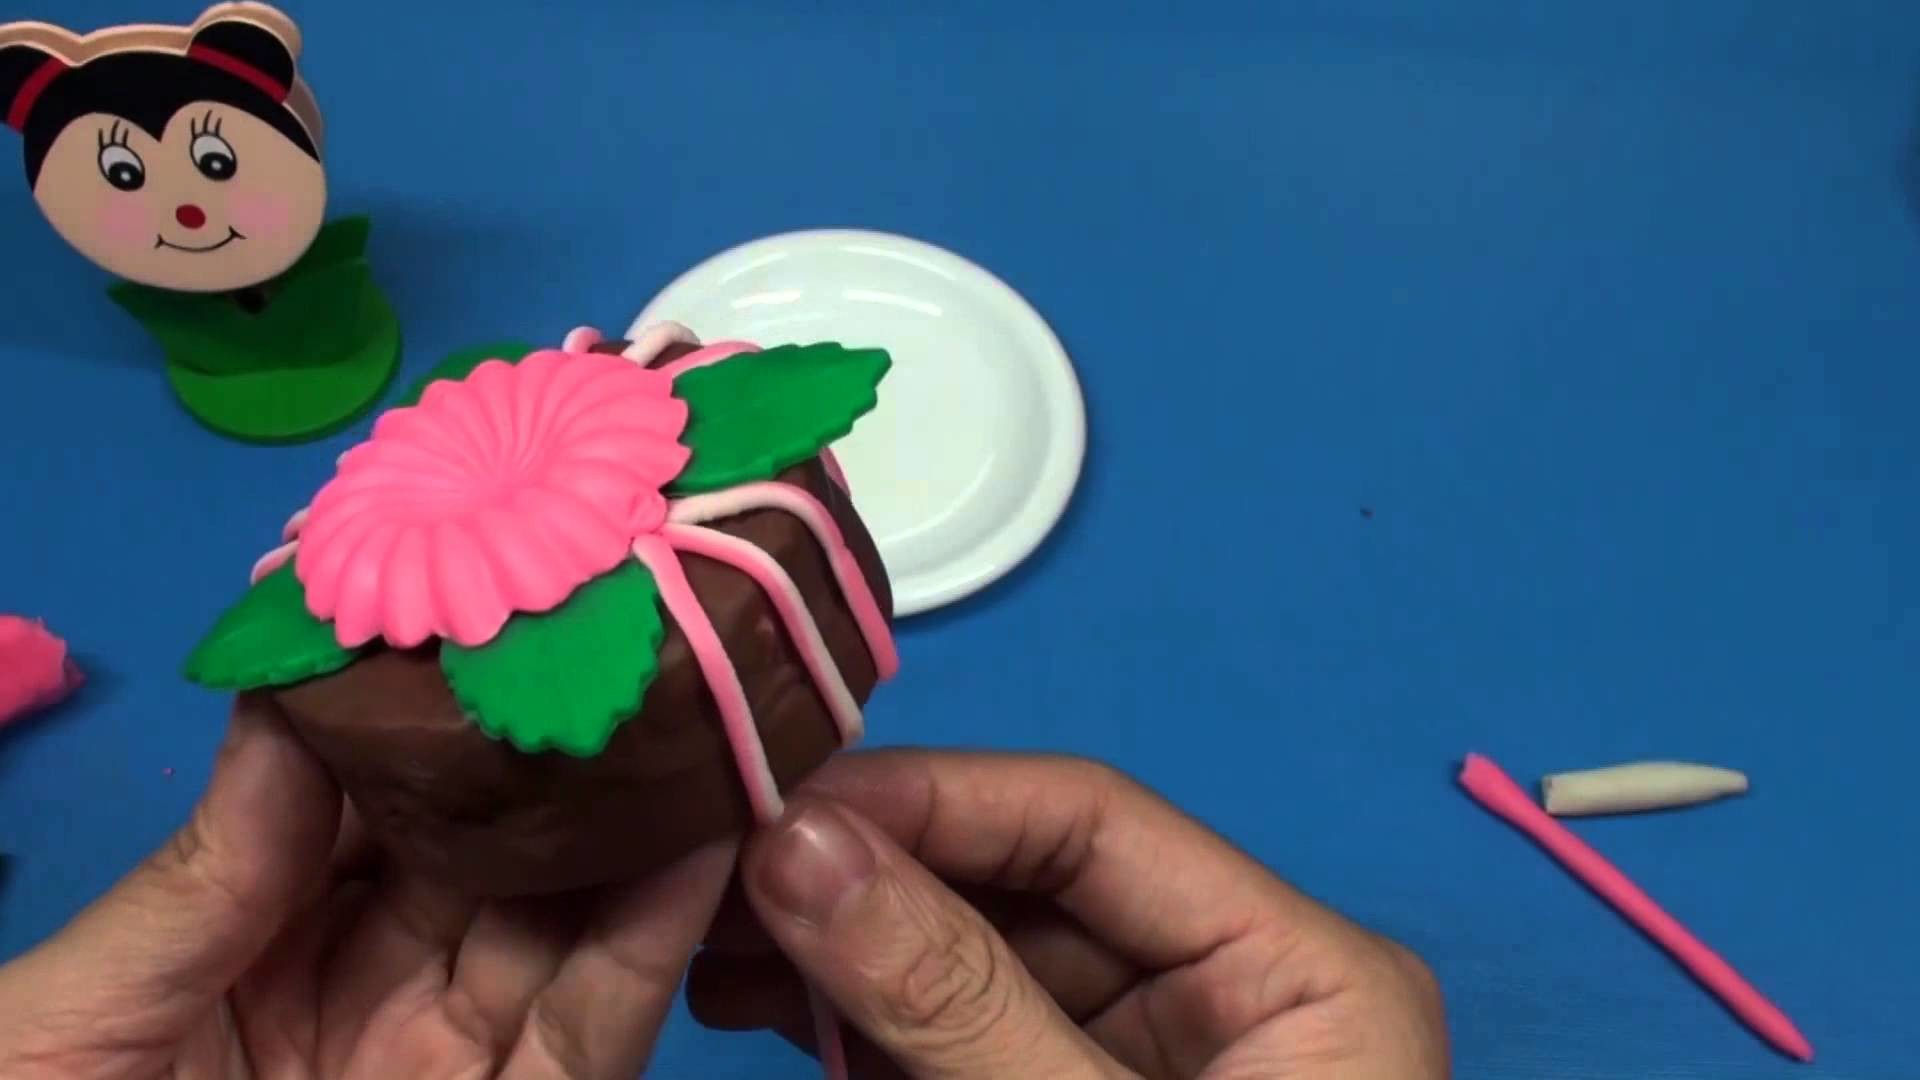 Kid's games - How to Make Birthday Cake Play Doh modeling clay Degree - Toy kids Full HD